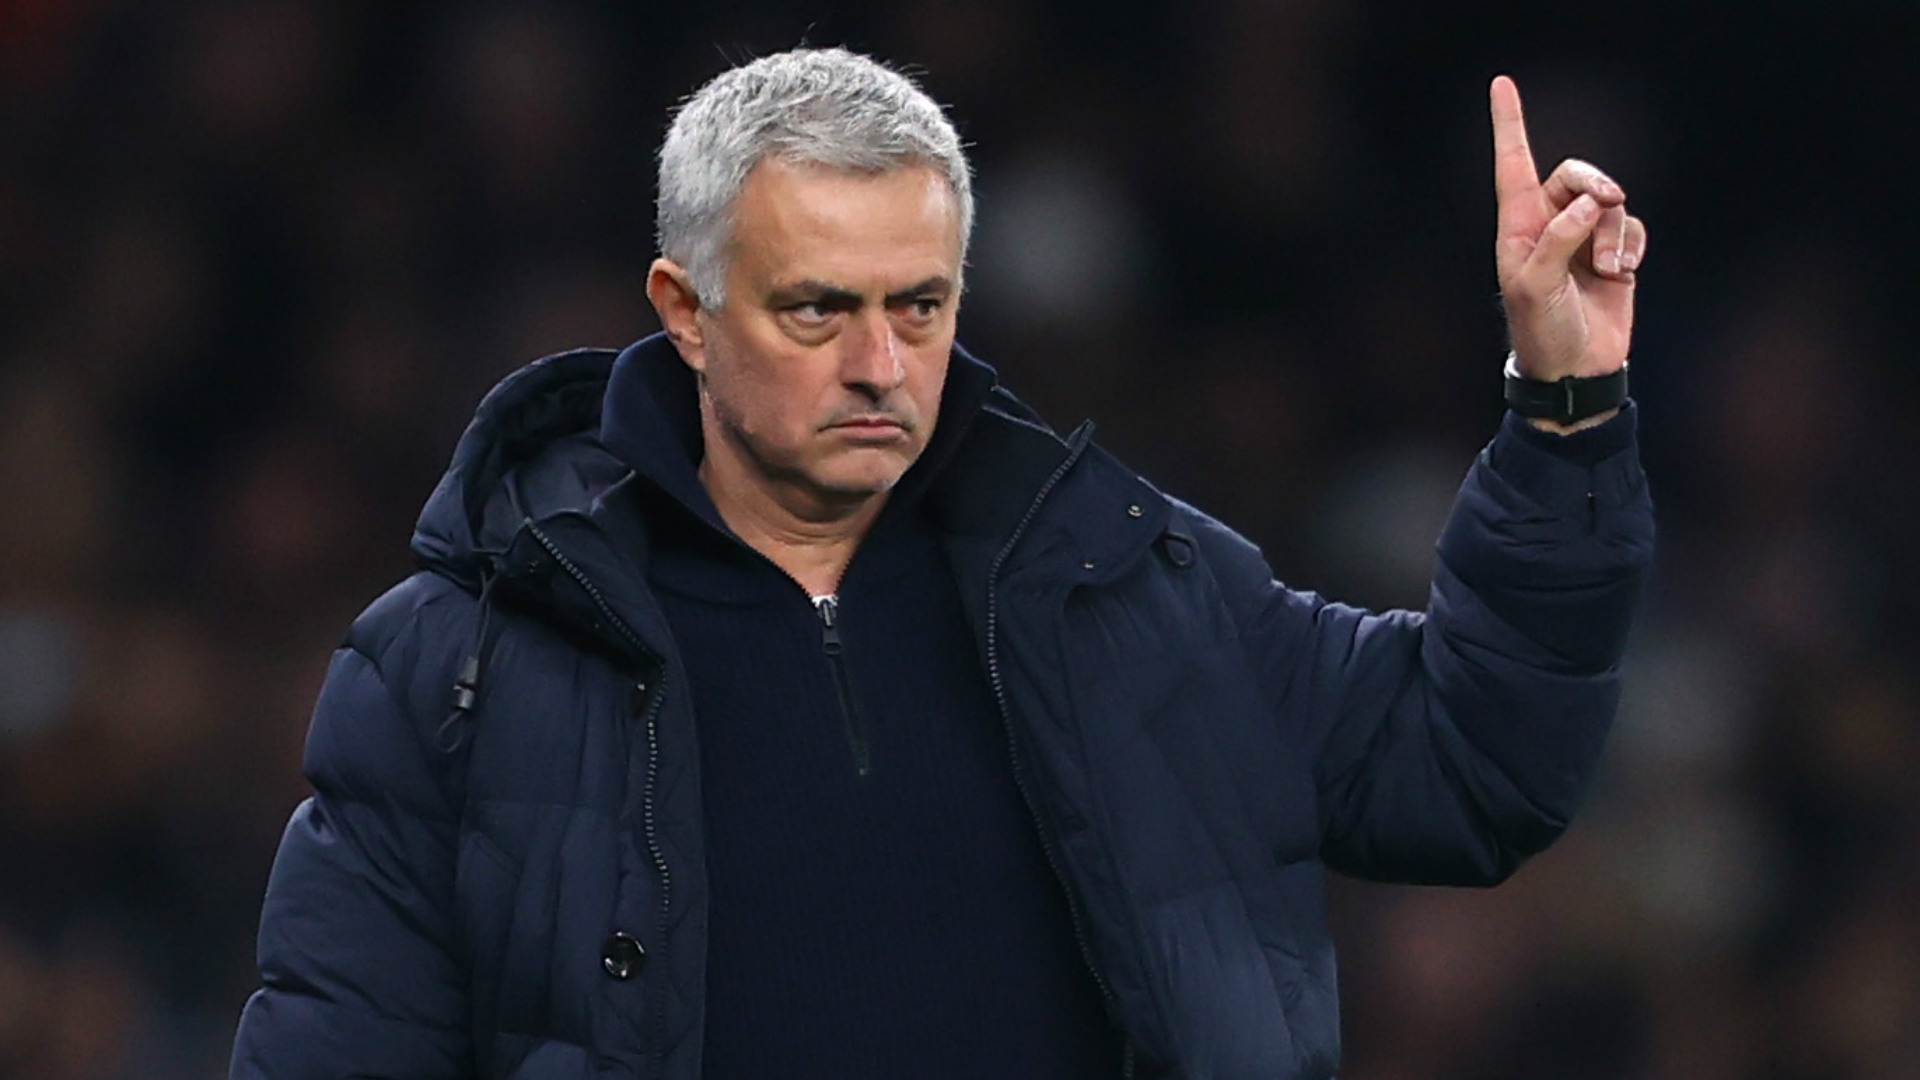 EPL: Why Tottenham May Avoid £30m Mourinho Pay-Off If He Is Sacked